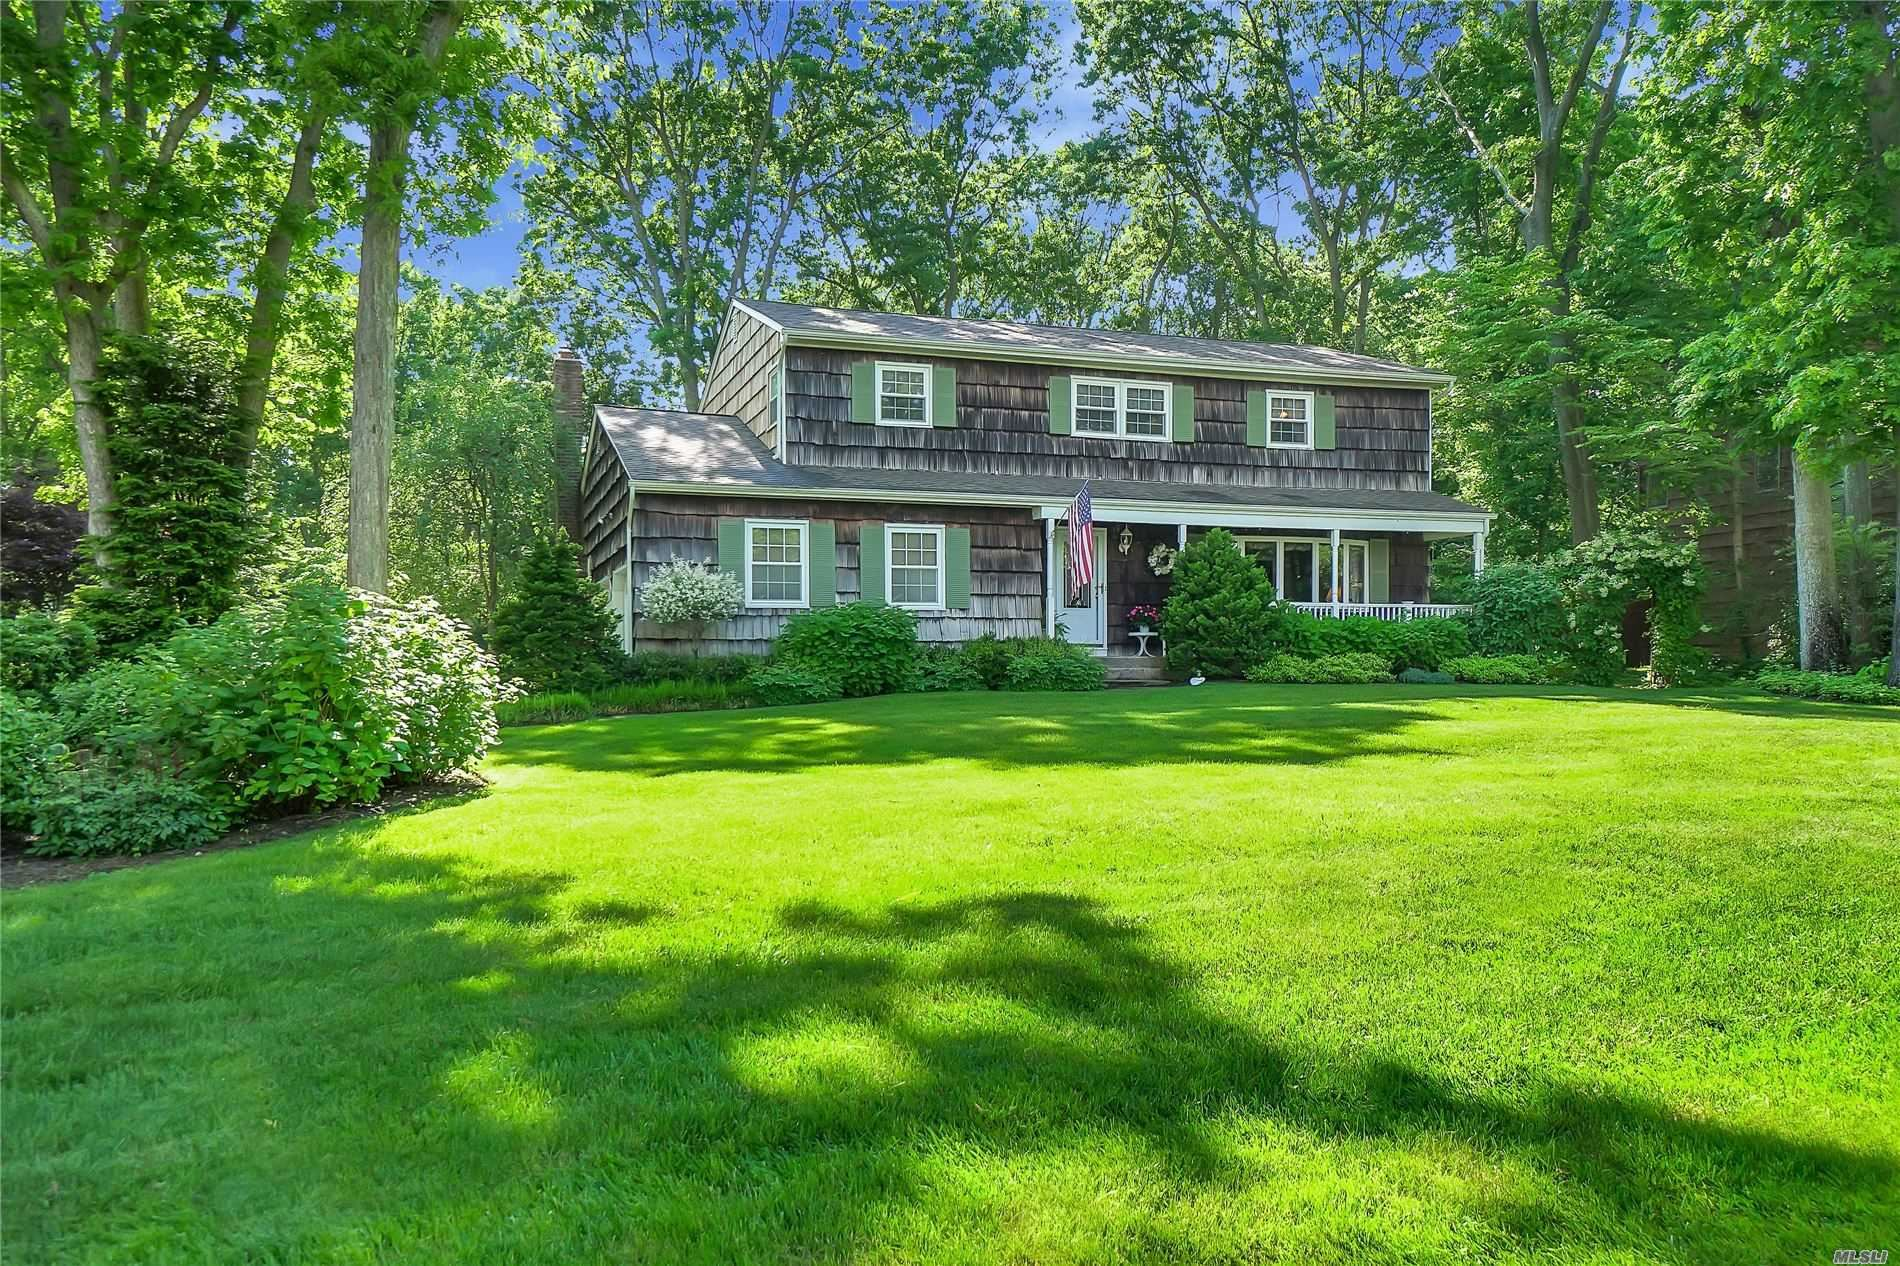 30 Richie Court N, Saint James, NY 11780 - MLS#: 3219912